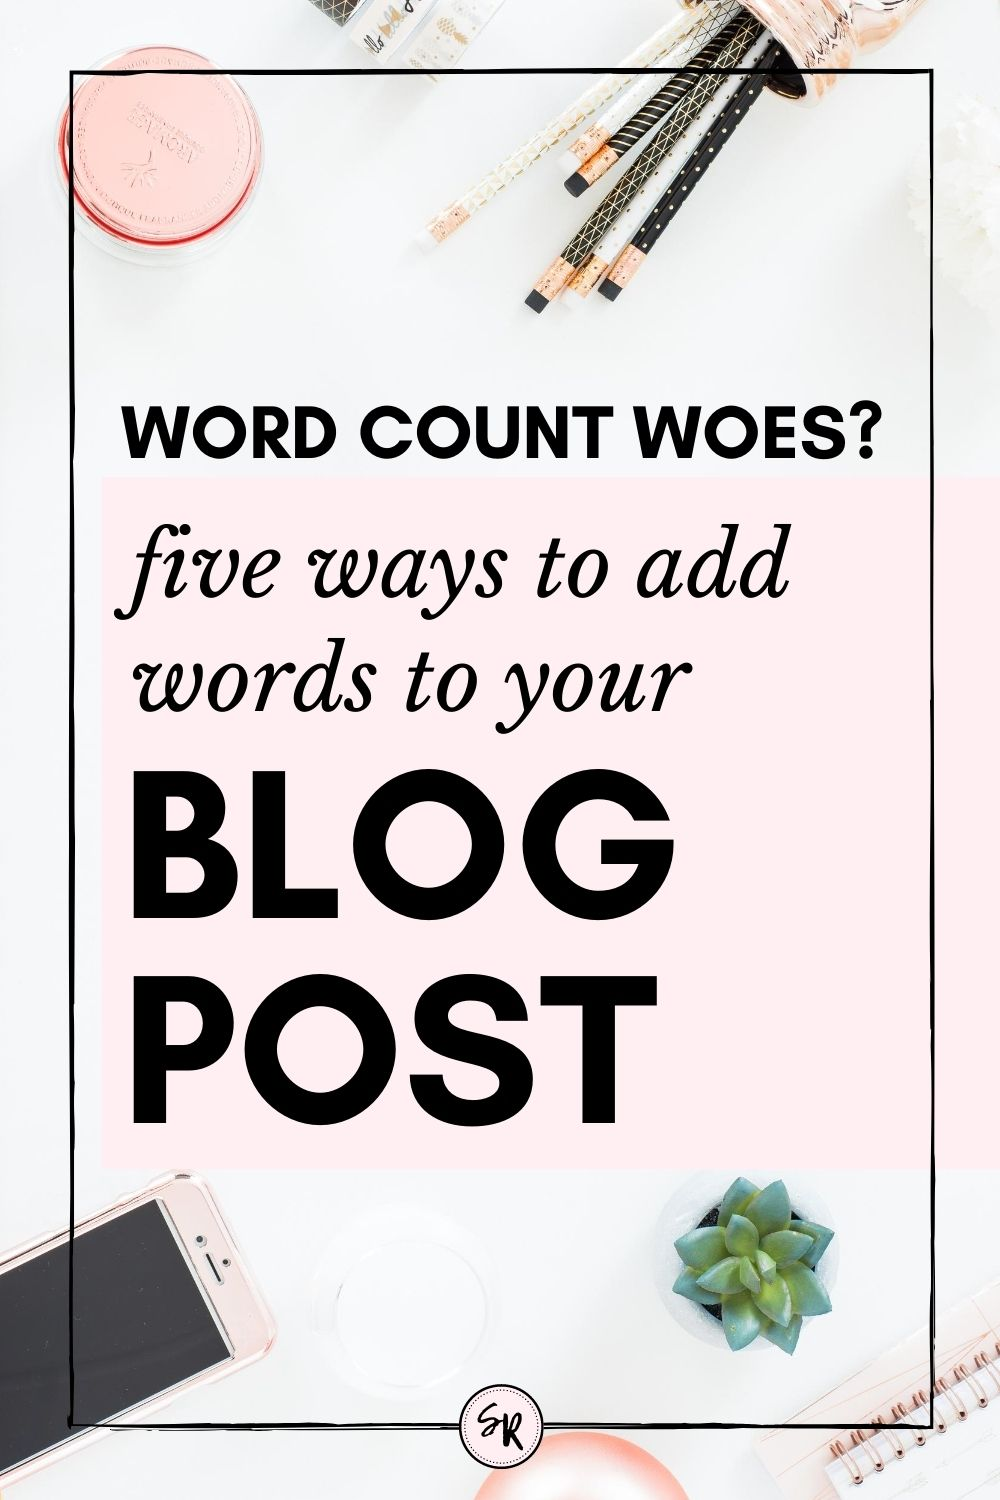 Word Count Woes? Five Ways to Add Words to Your Blog Post | ShellyRawlings.com